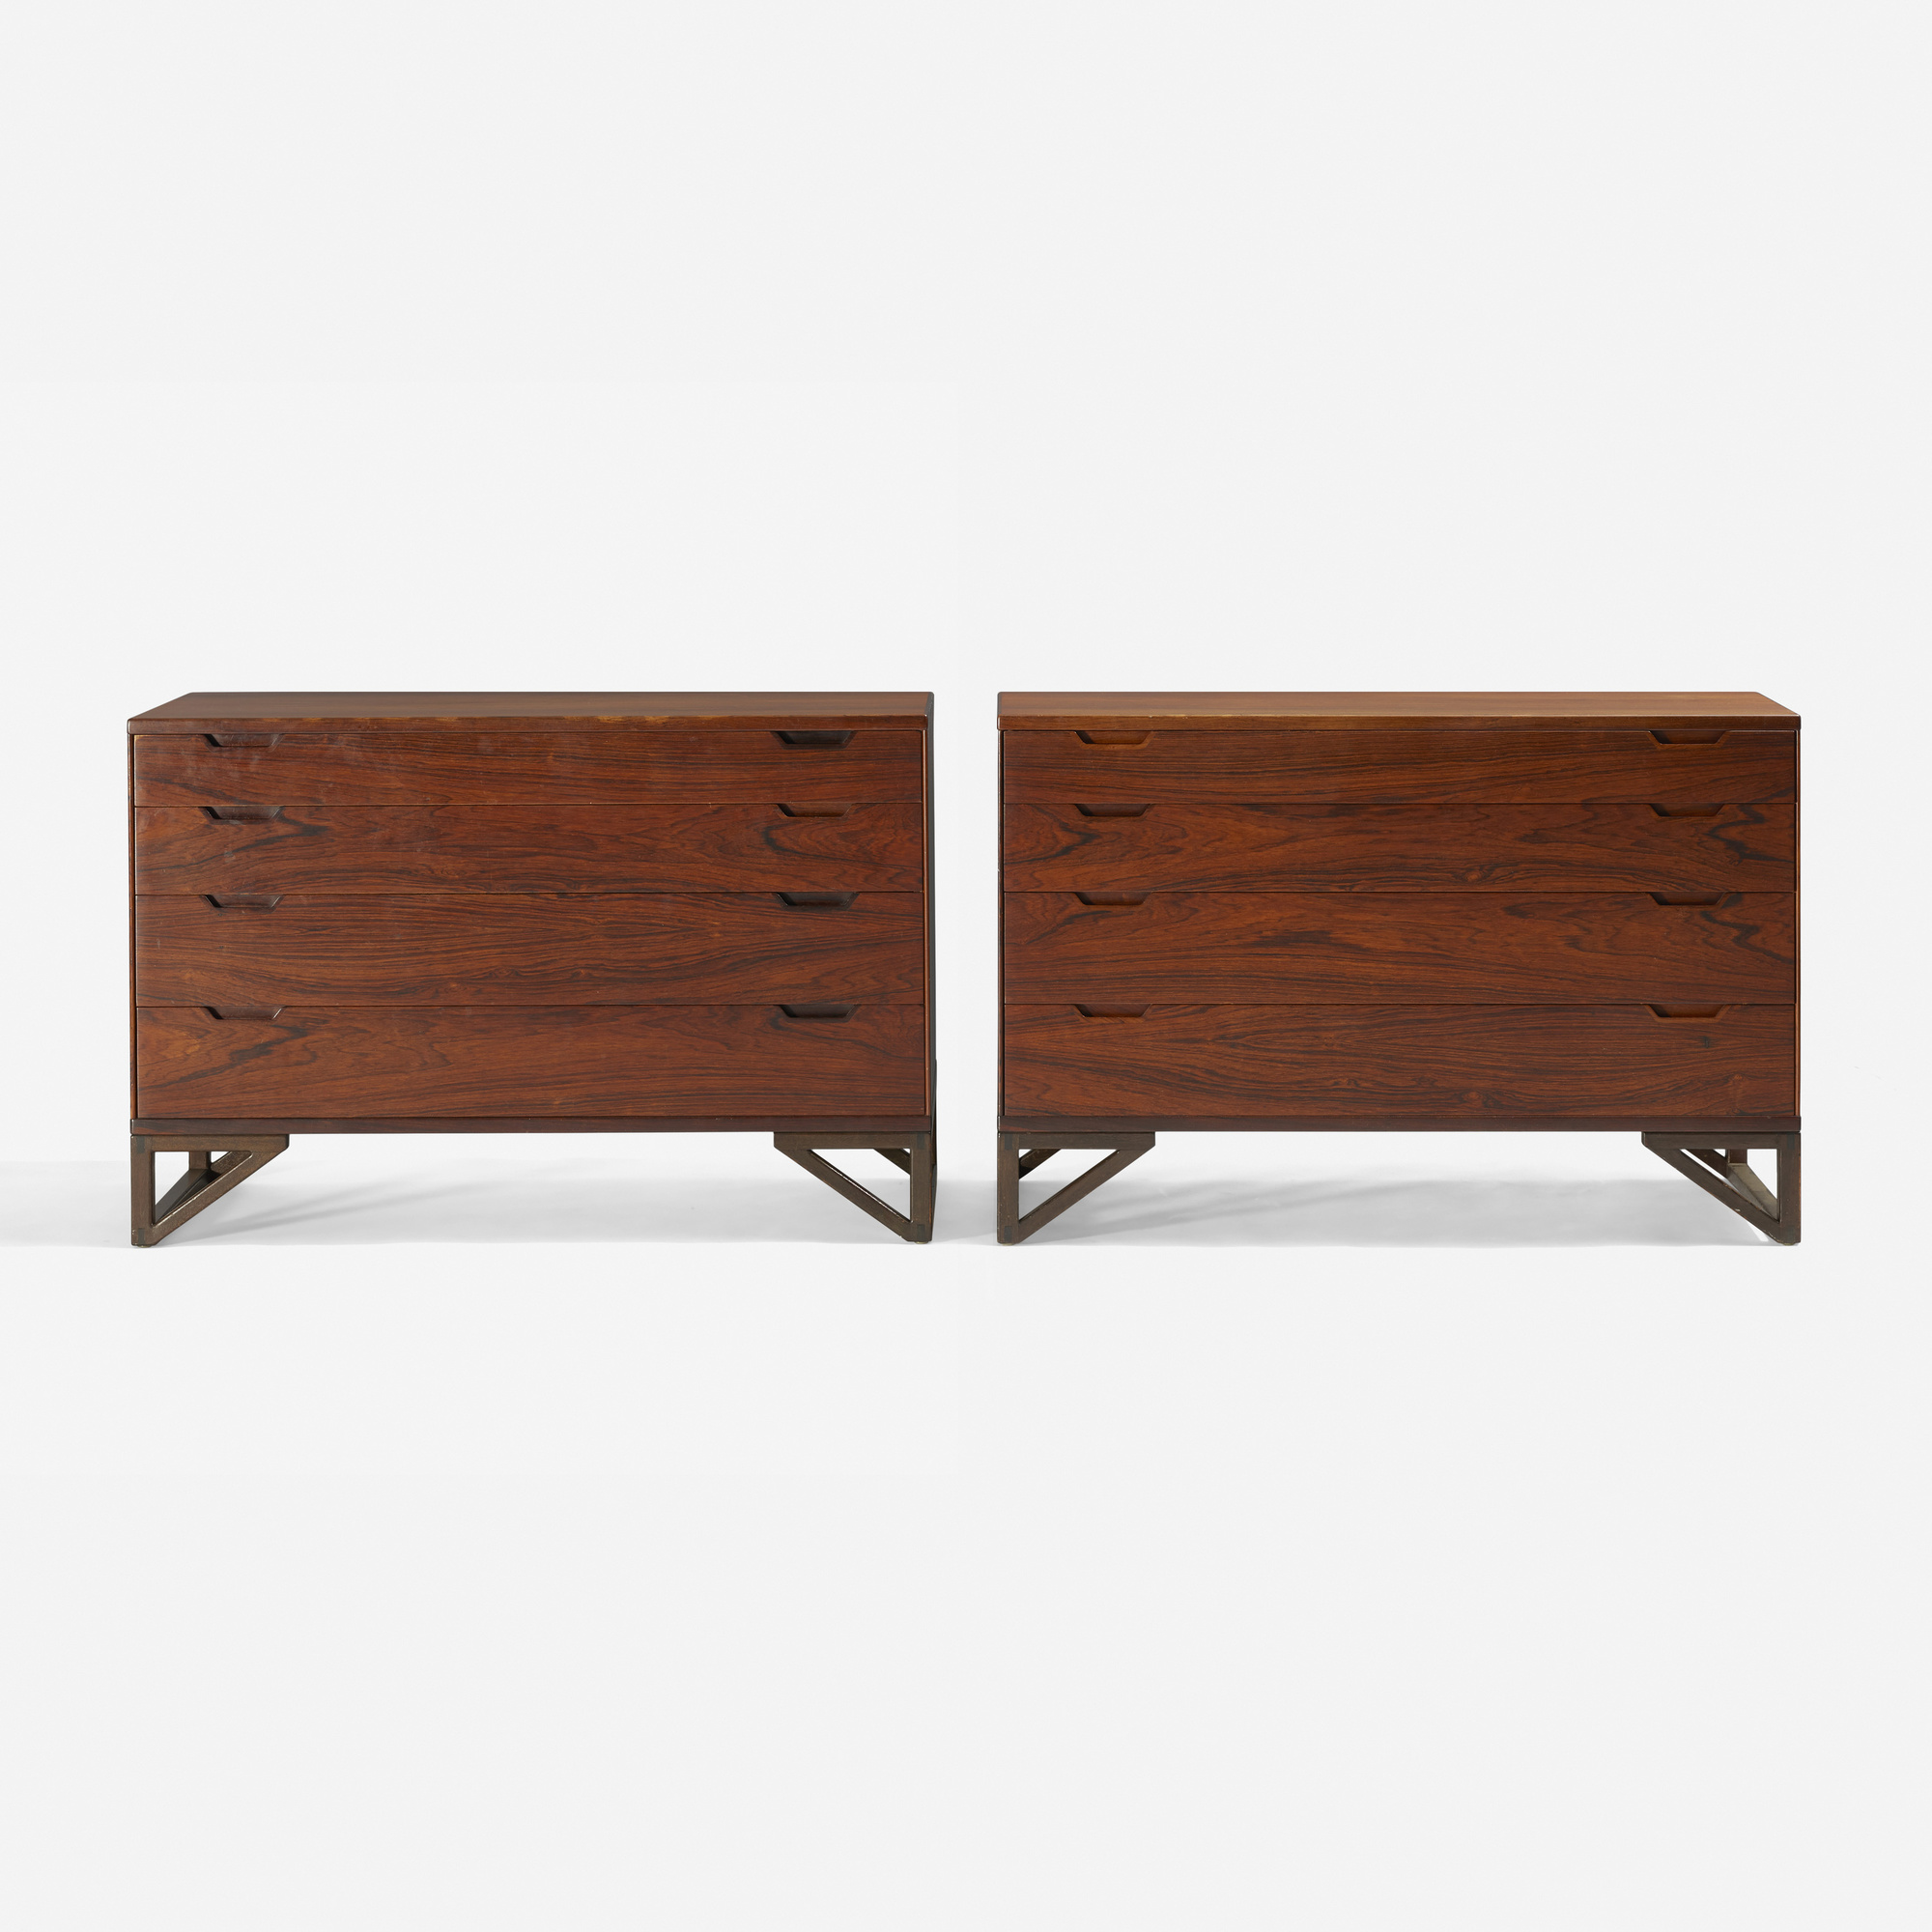 297: Svend Langkilde / cabinets, pair (1 of 4)